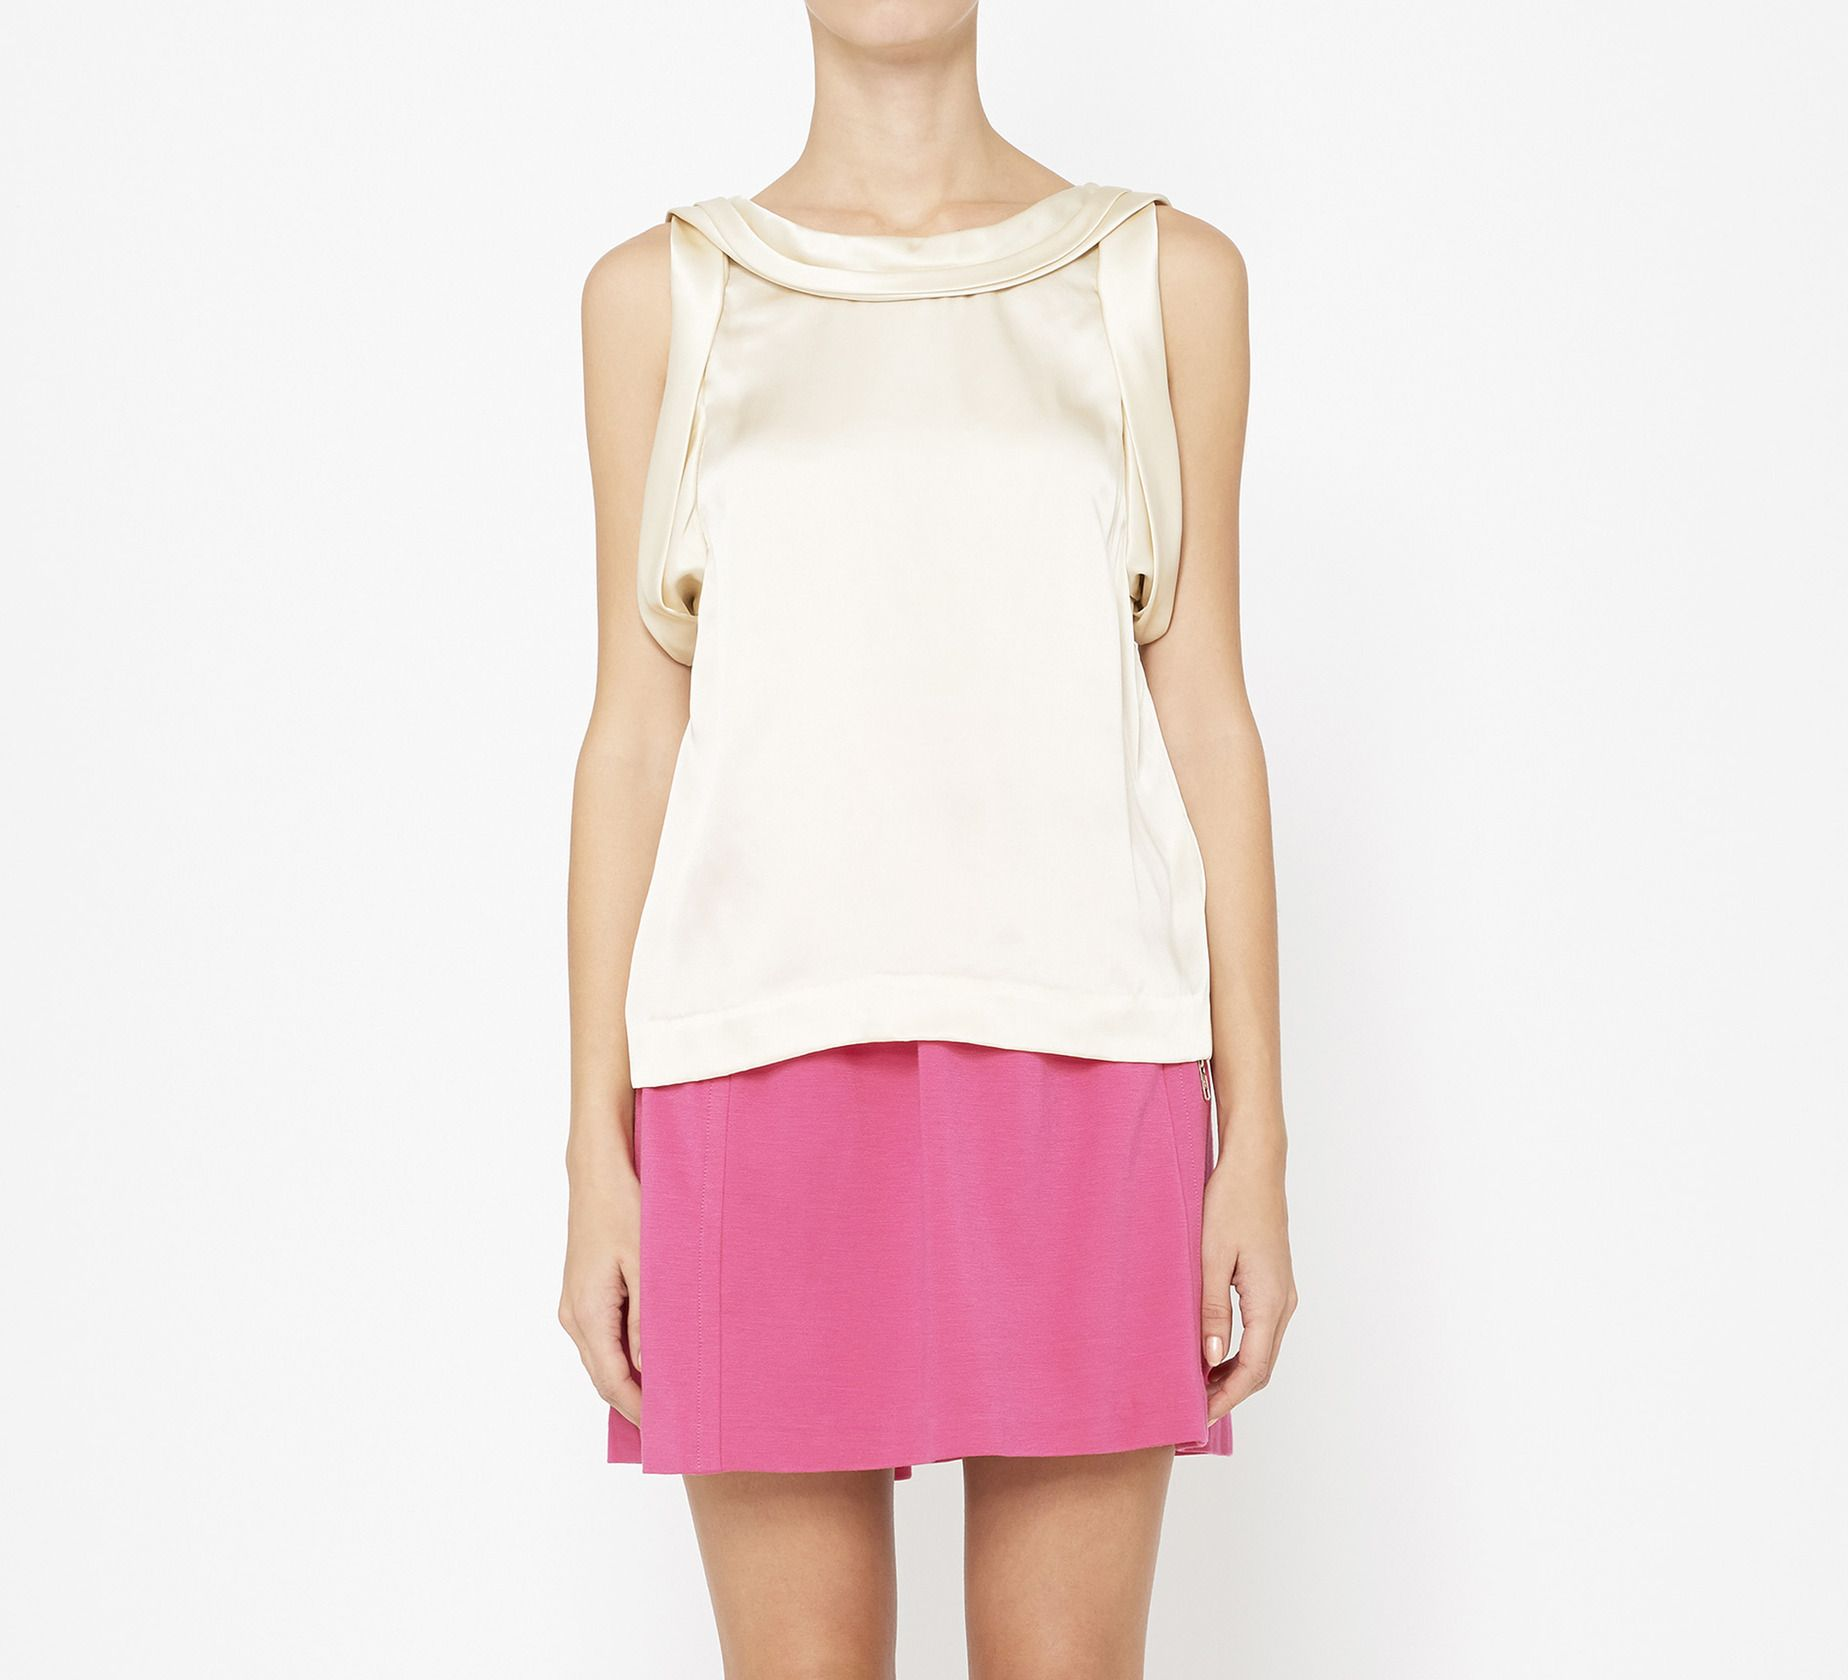 3.1 Phillip Lim Champagne Top: love the back!